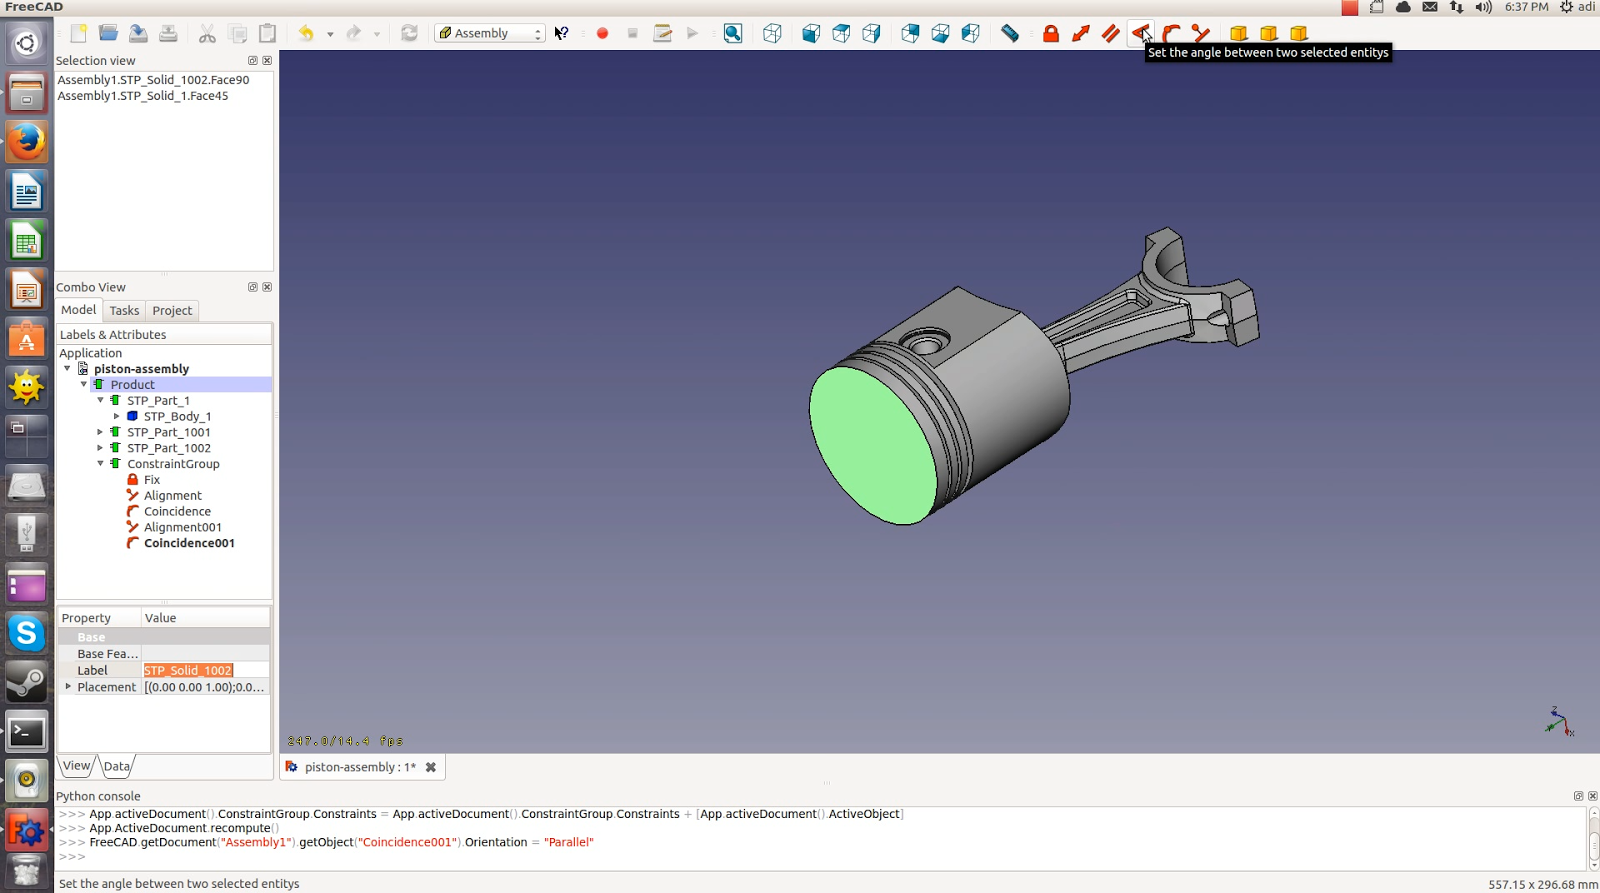 FreeCAD tutorial: How to test the assembly module [updated]